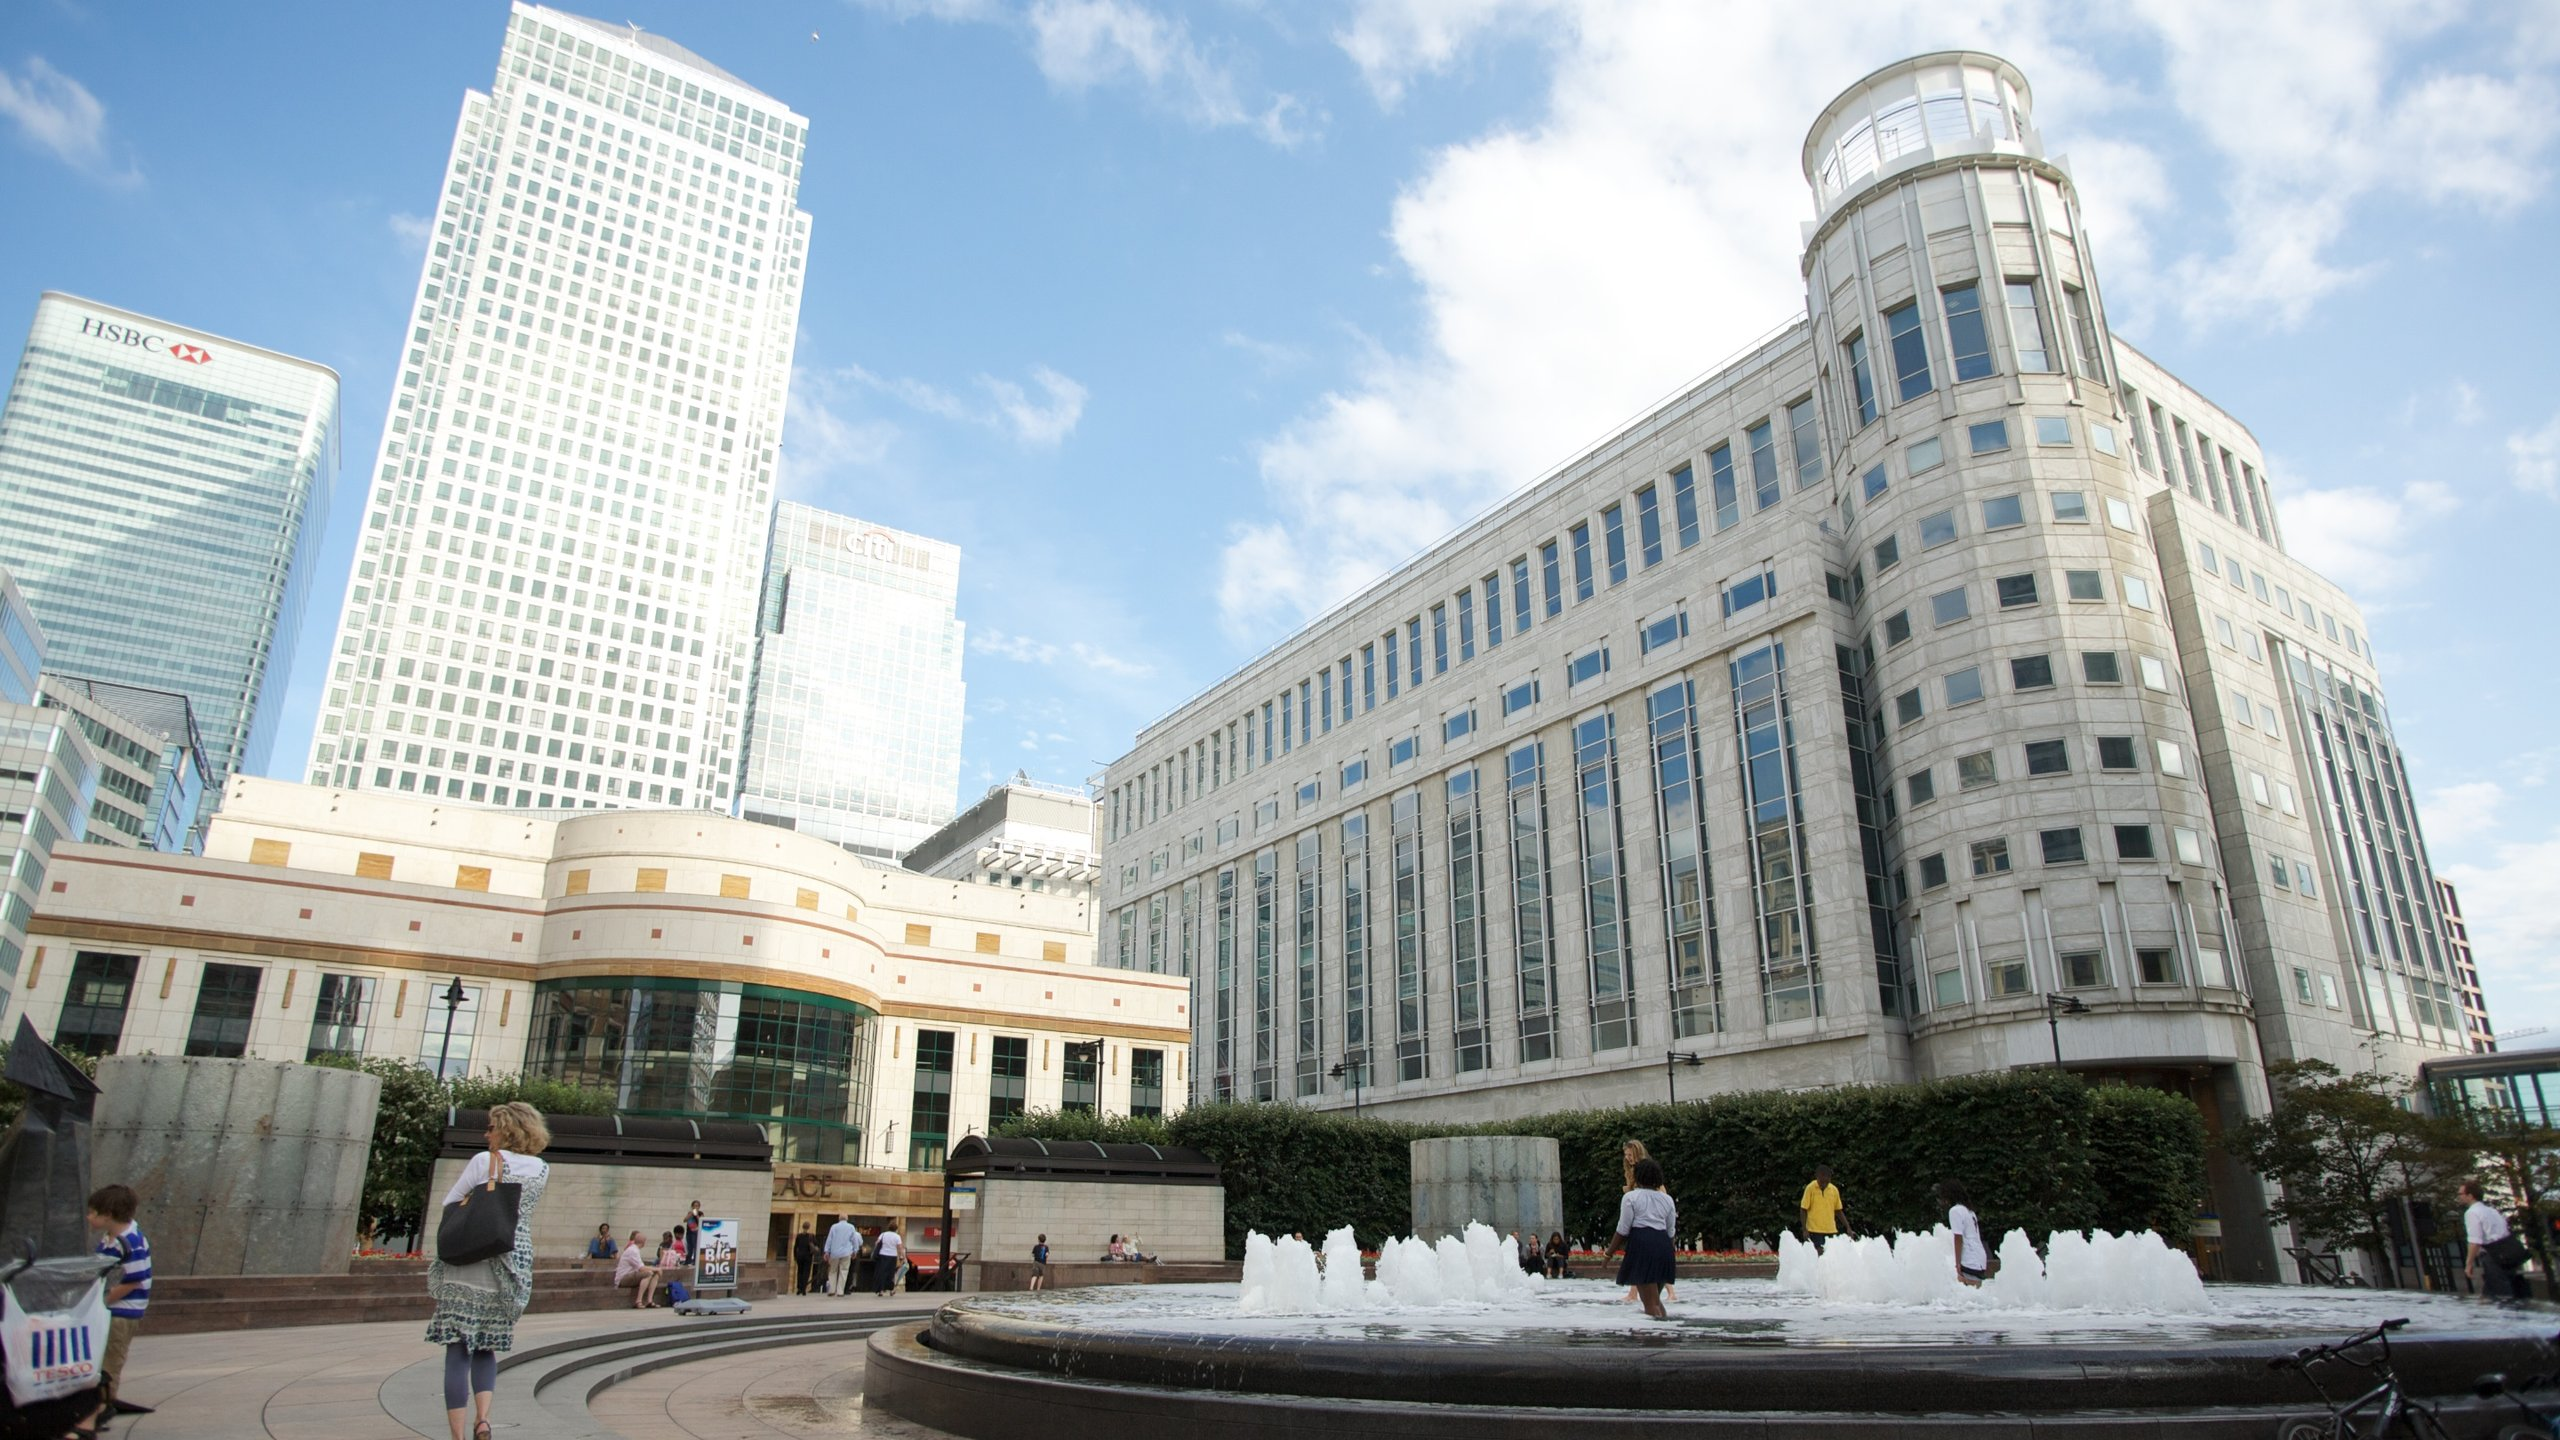 Hotels with Parking in Canary Wharf   Find 221 Hotel Deals